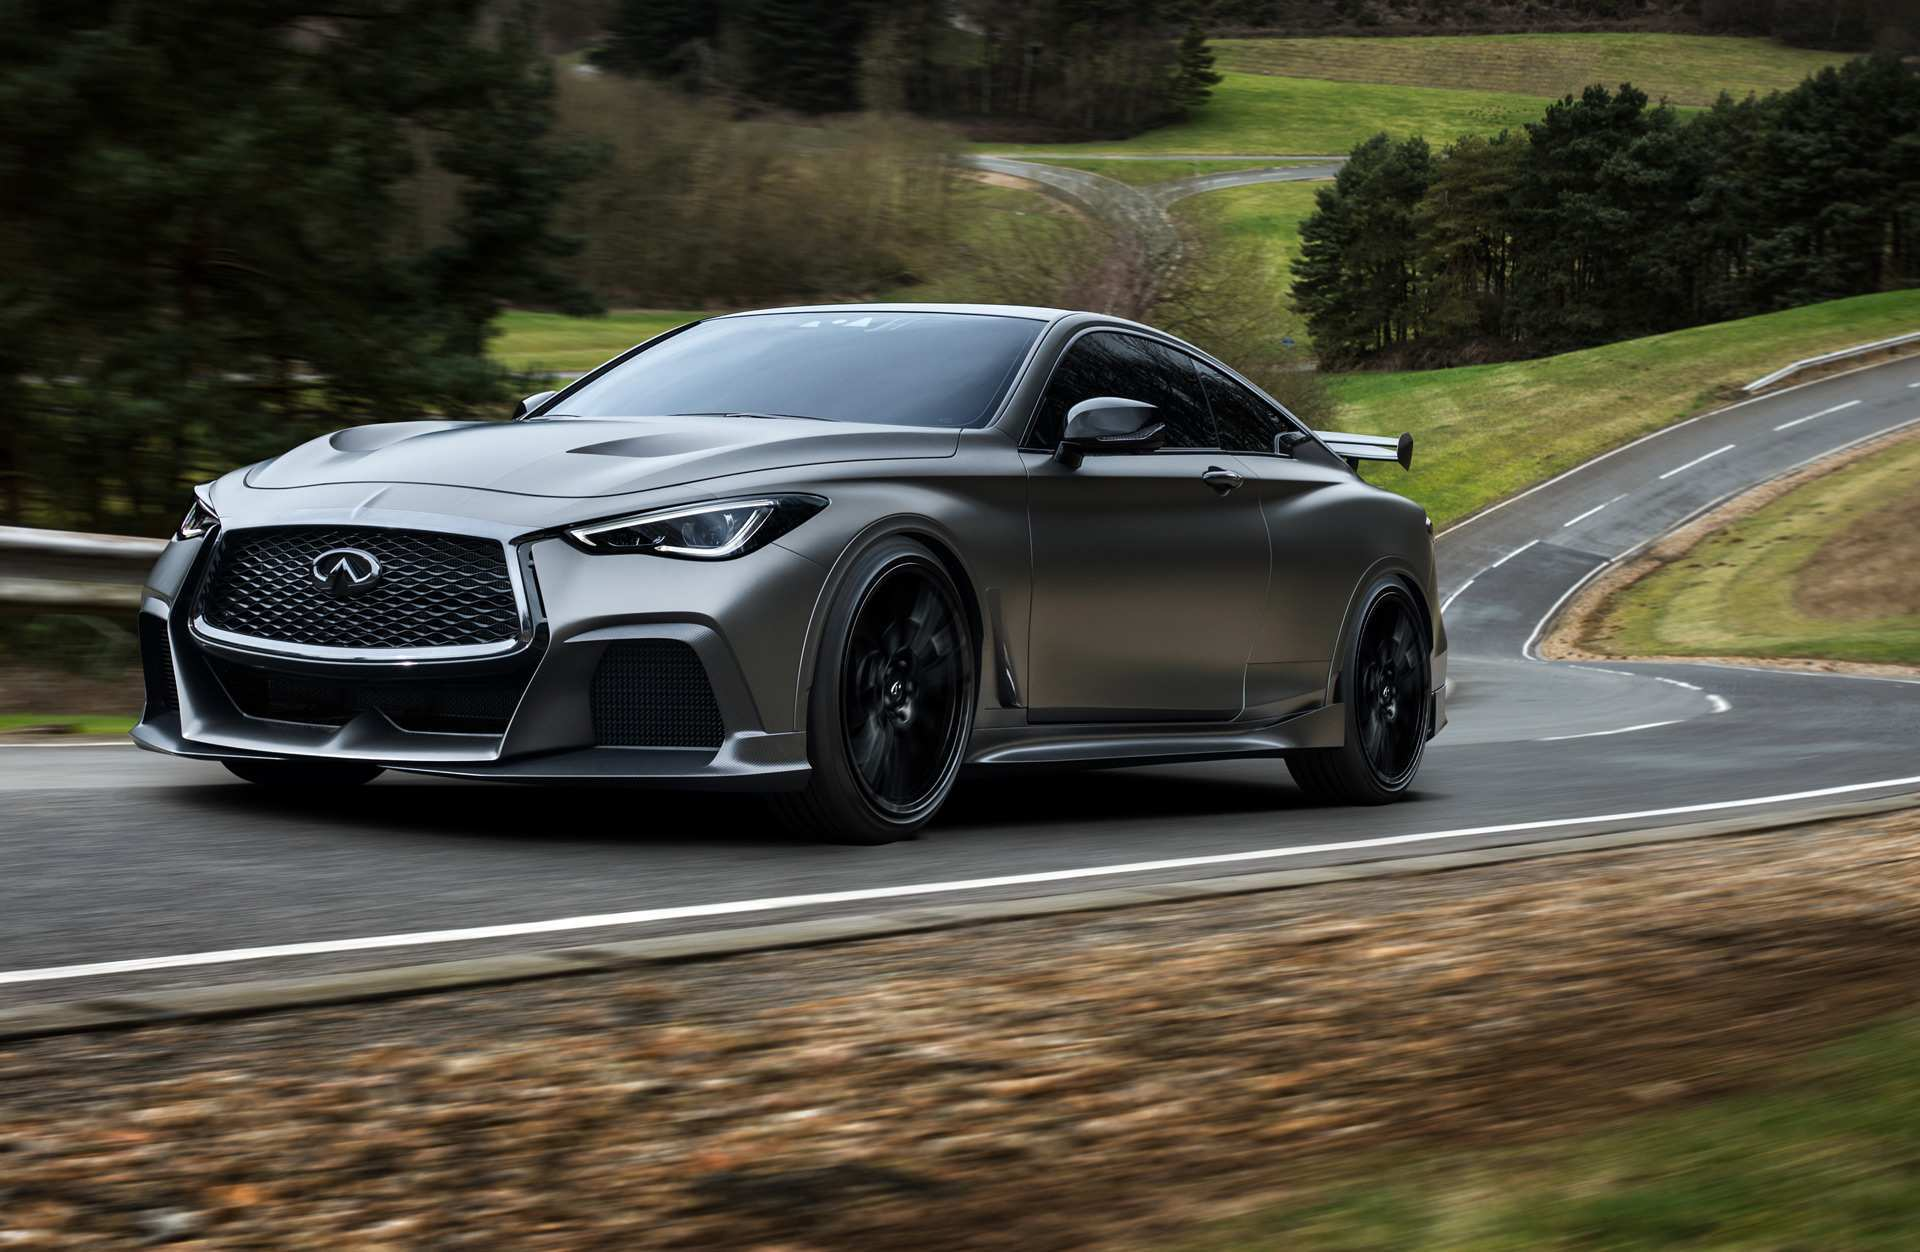 86 The Best 2020 Infiniti Q60 Coupe Speed Test